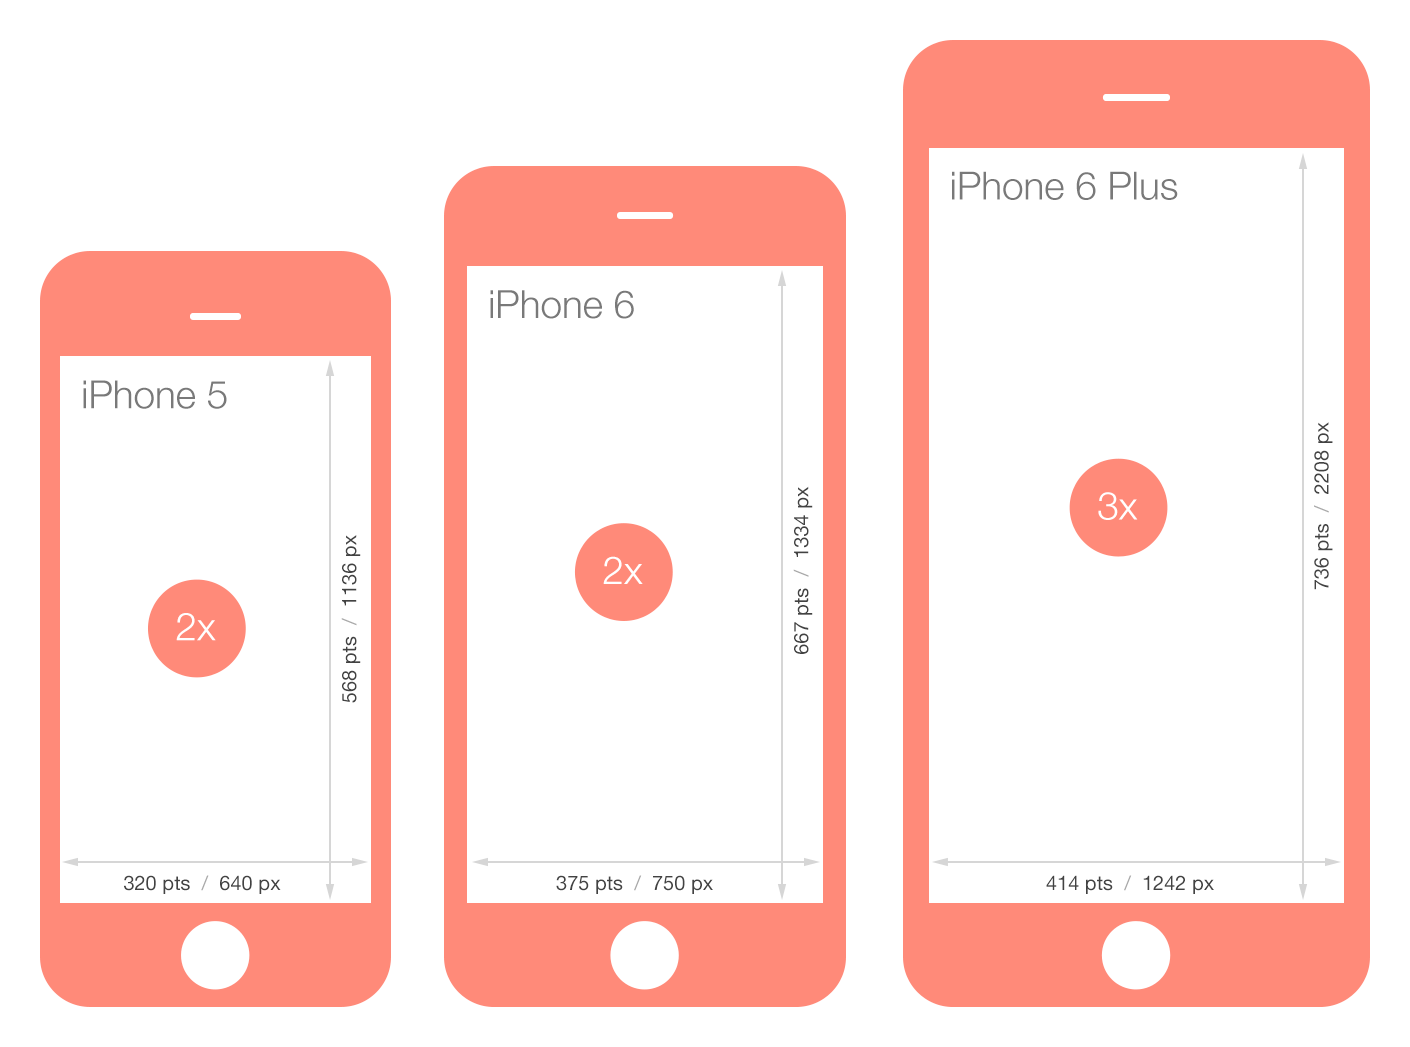 designing for the new iphone 6 screen resolutions createful